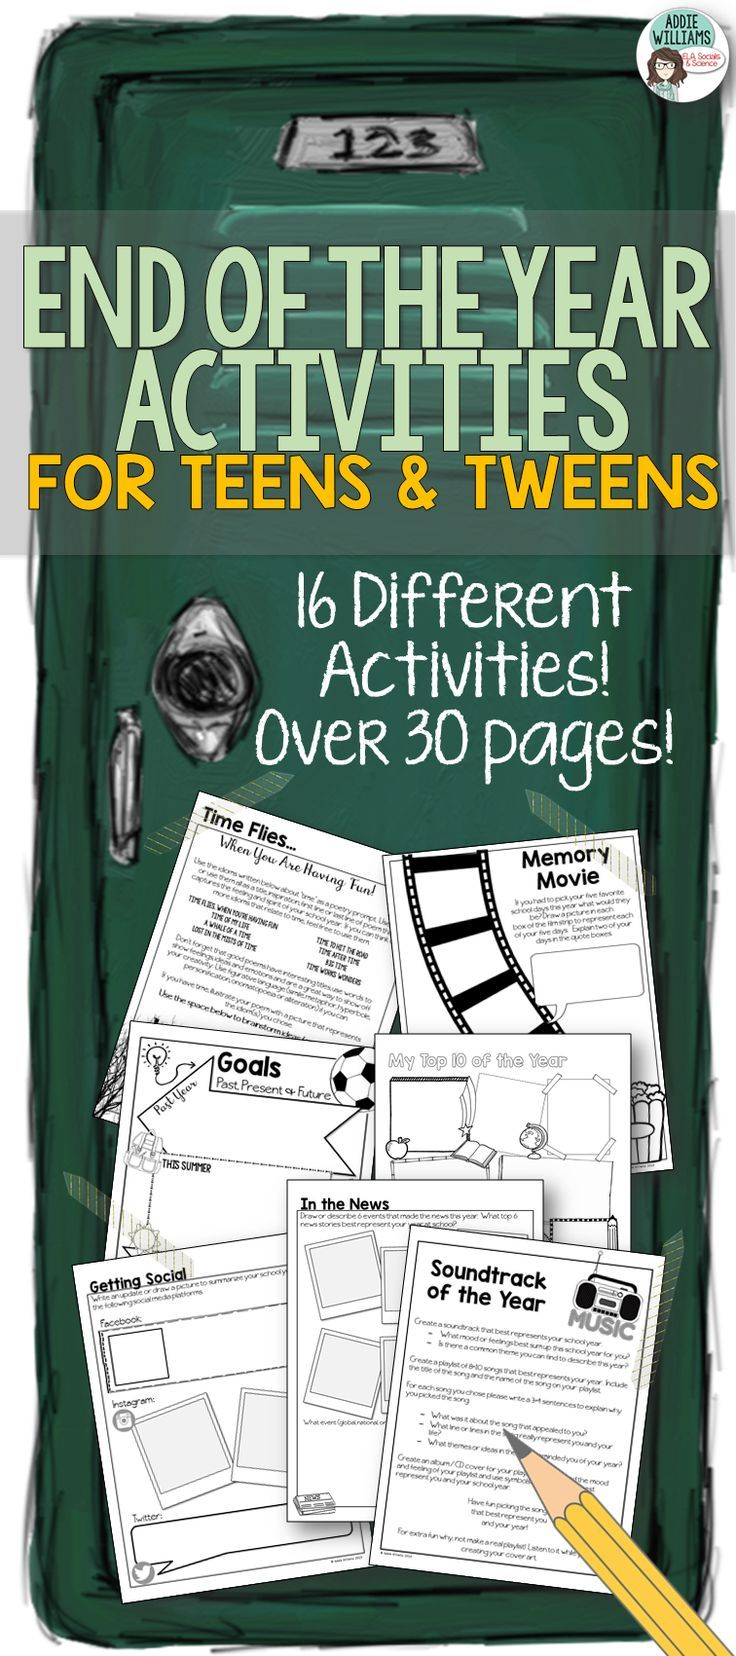 End of the Year Activities for Teens and Tweens! 16 different activities to help you get through the chaos at the end of the year!